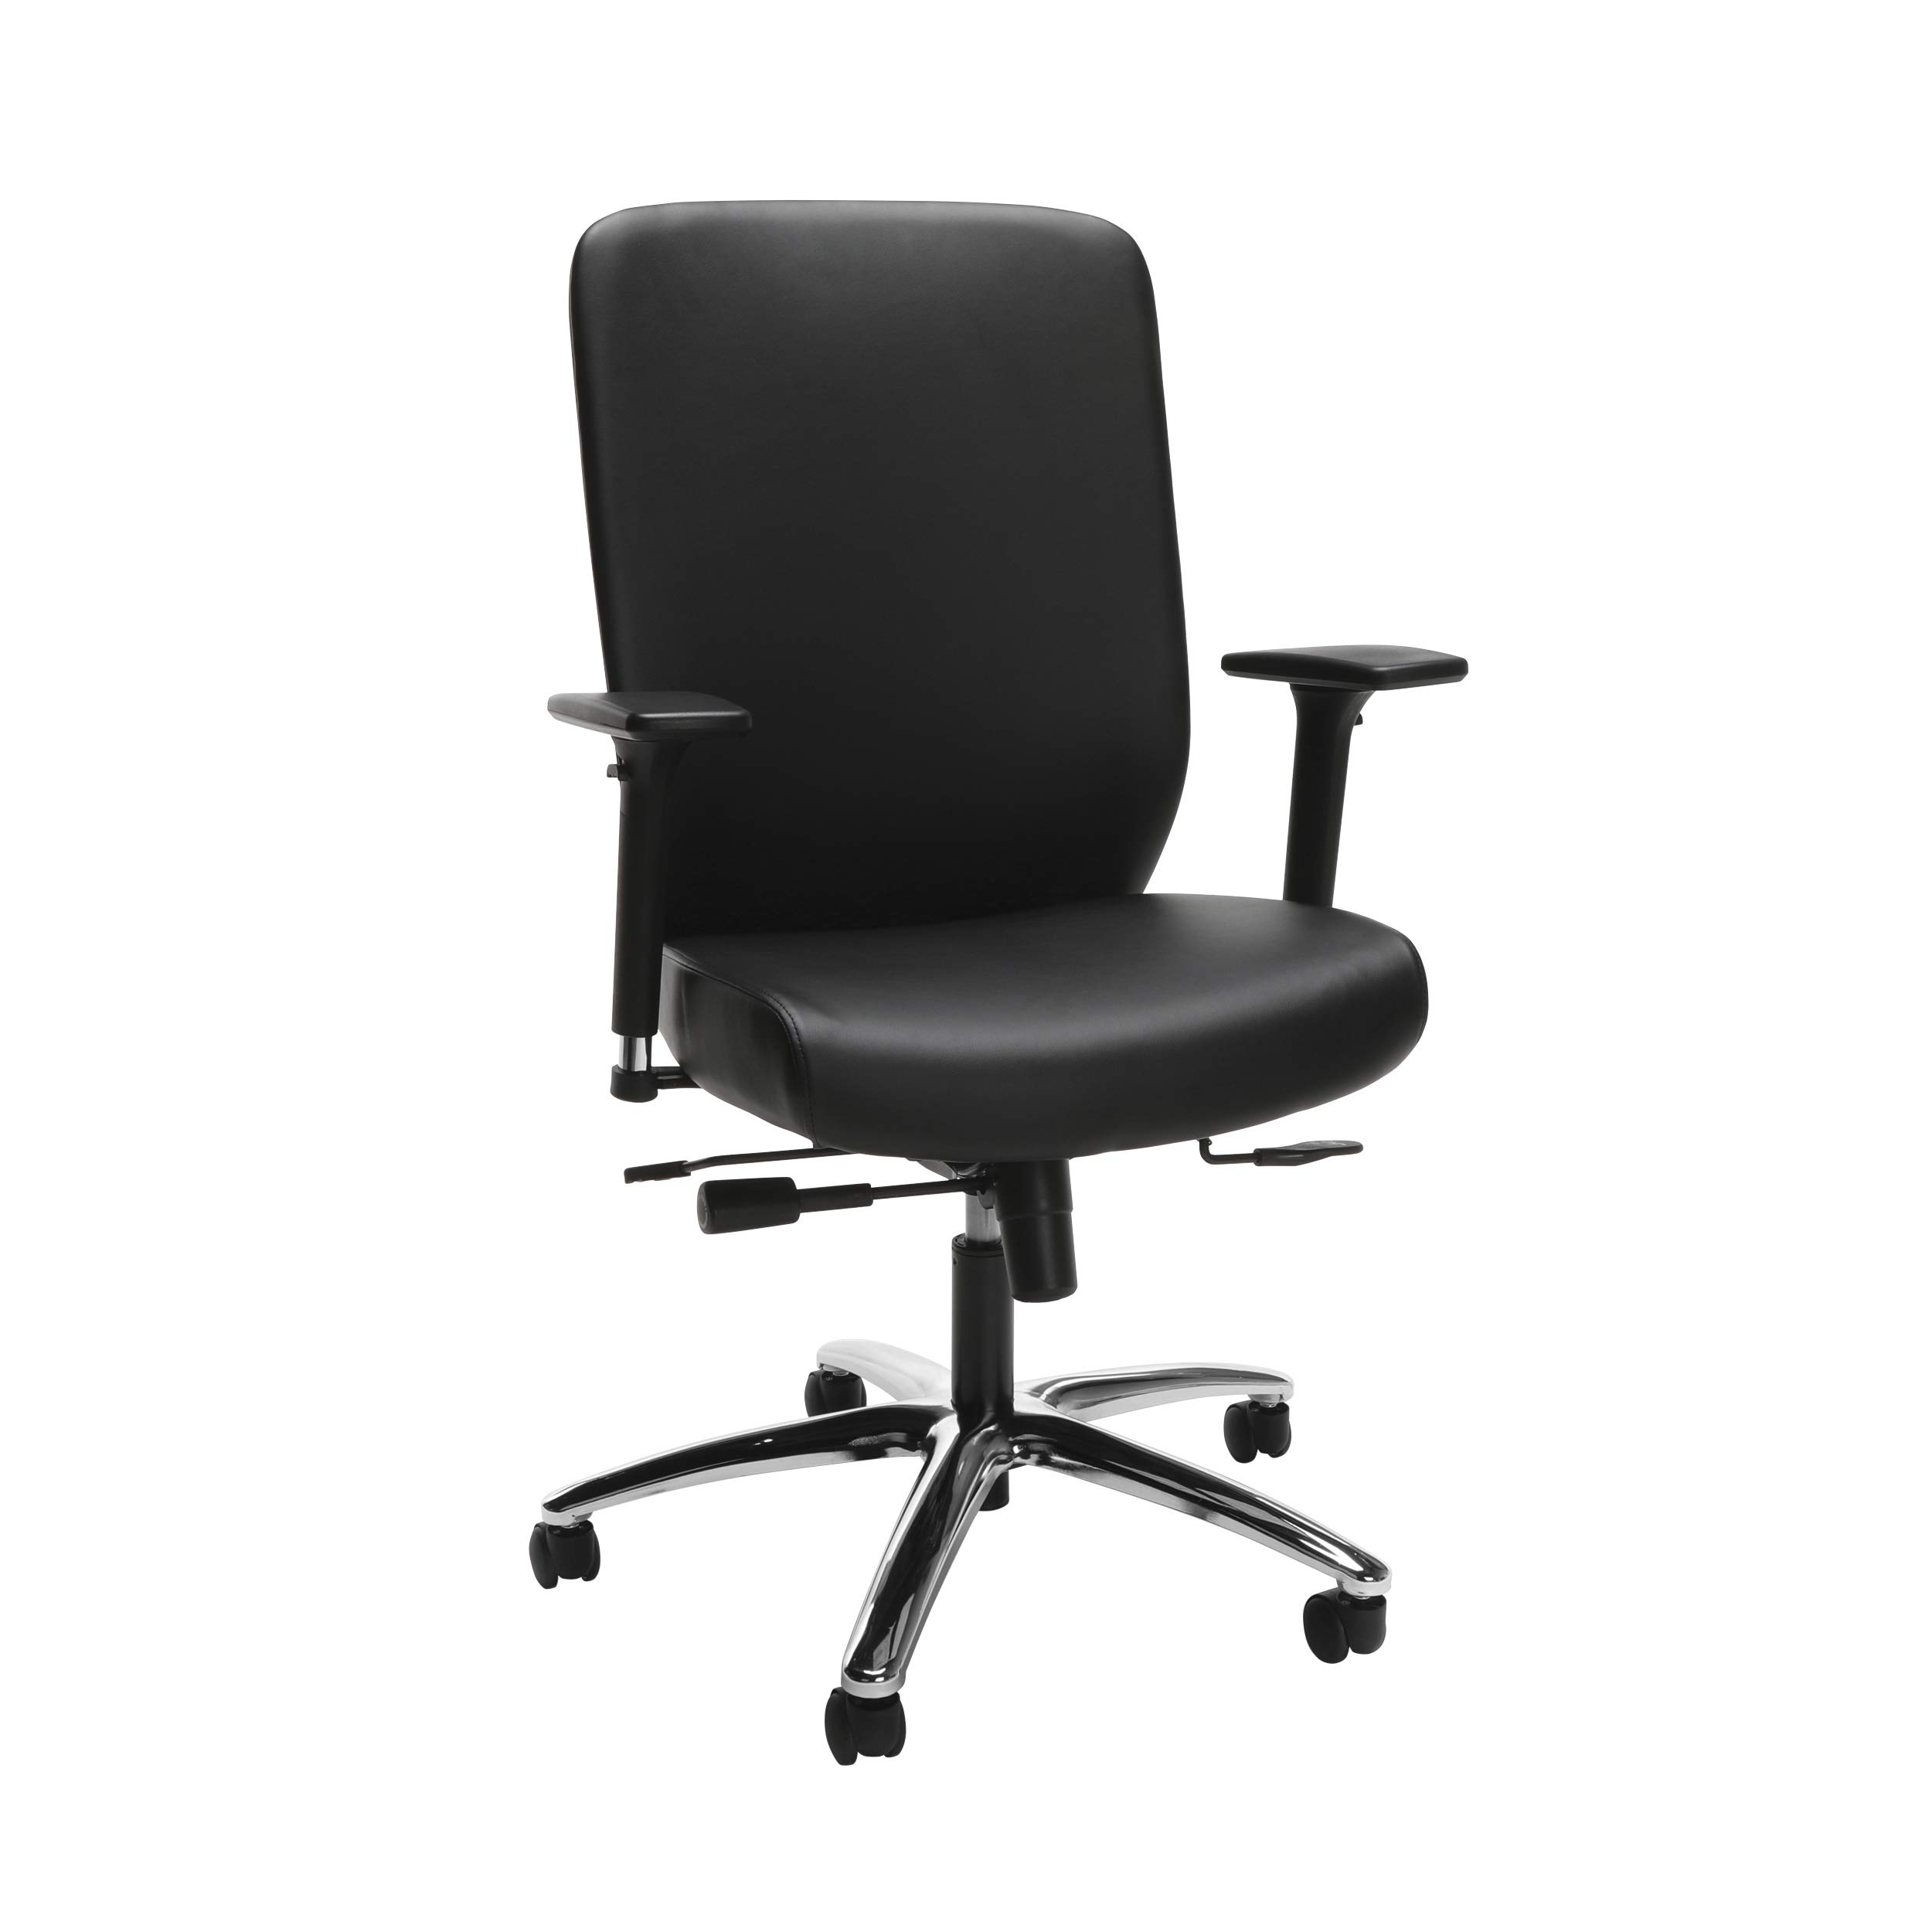 HON HONVL722SB11 High-Back Executive Chair with Synchro-Tilt Control, in Black (HVL722), Upholstered by HON